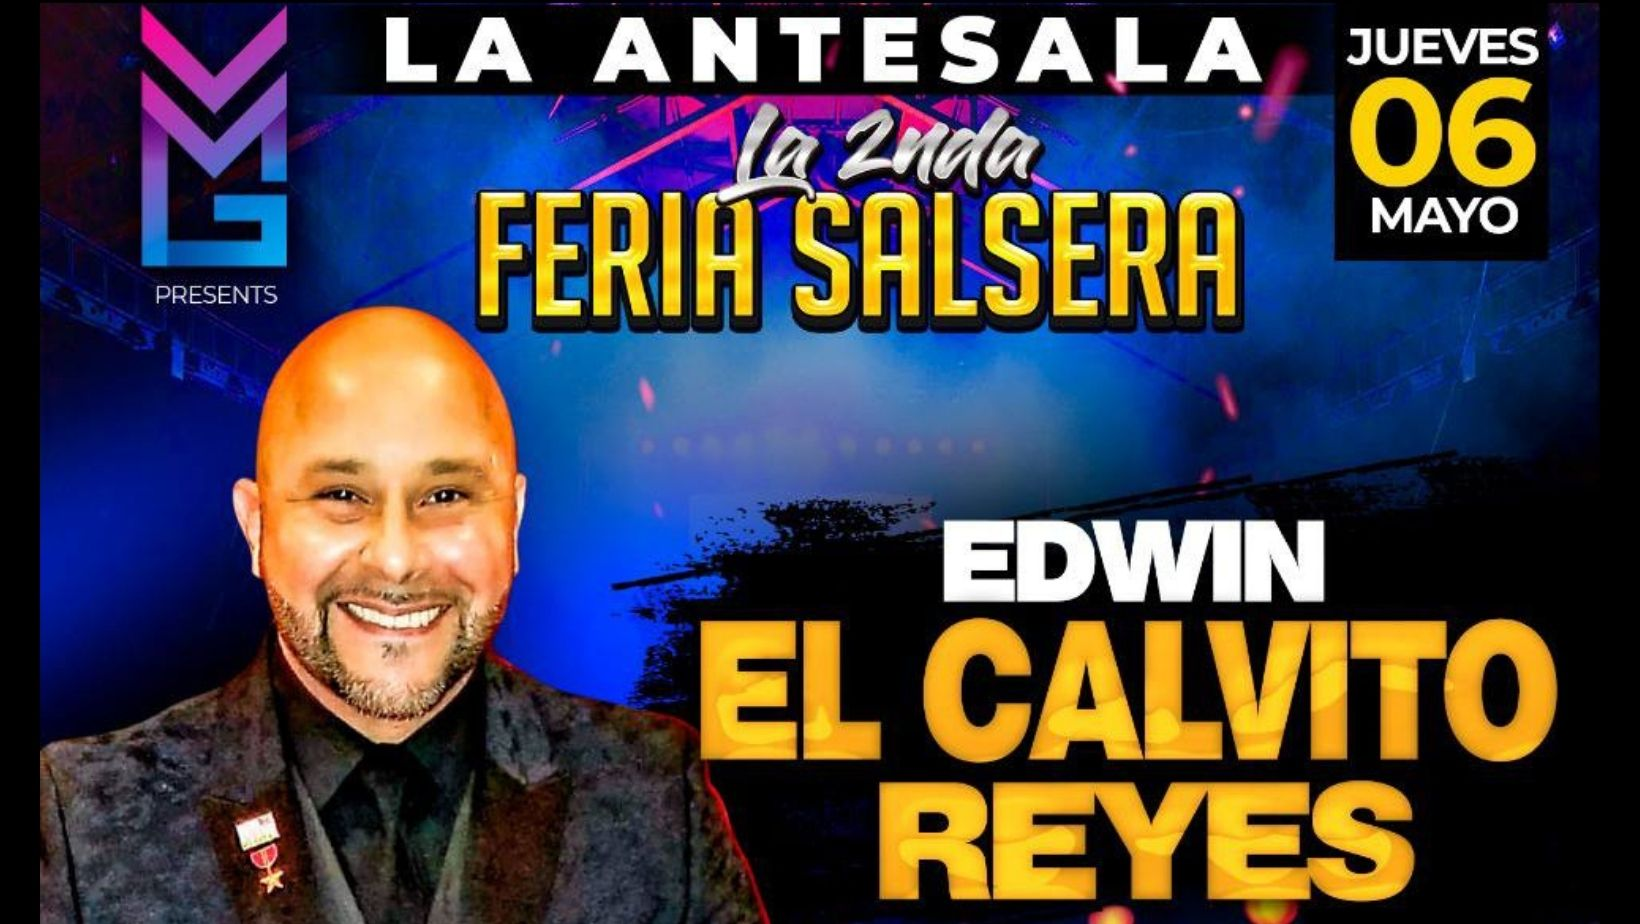 Tickets for La Antesala a La 2nda Feria Salsera in Orlando from ShowClix